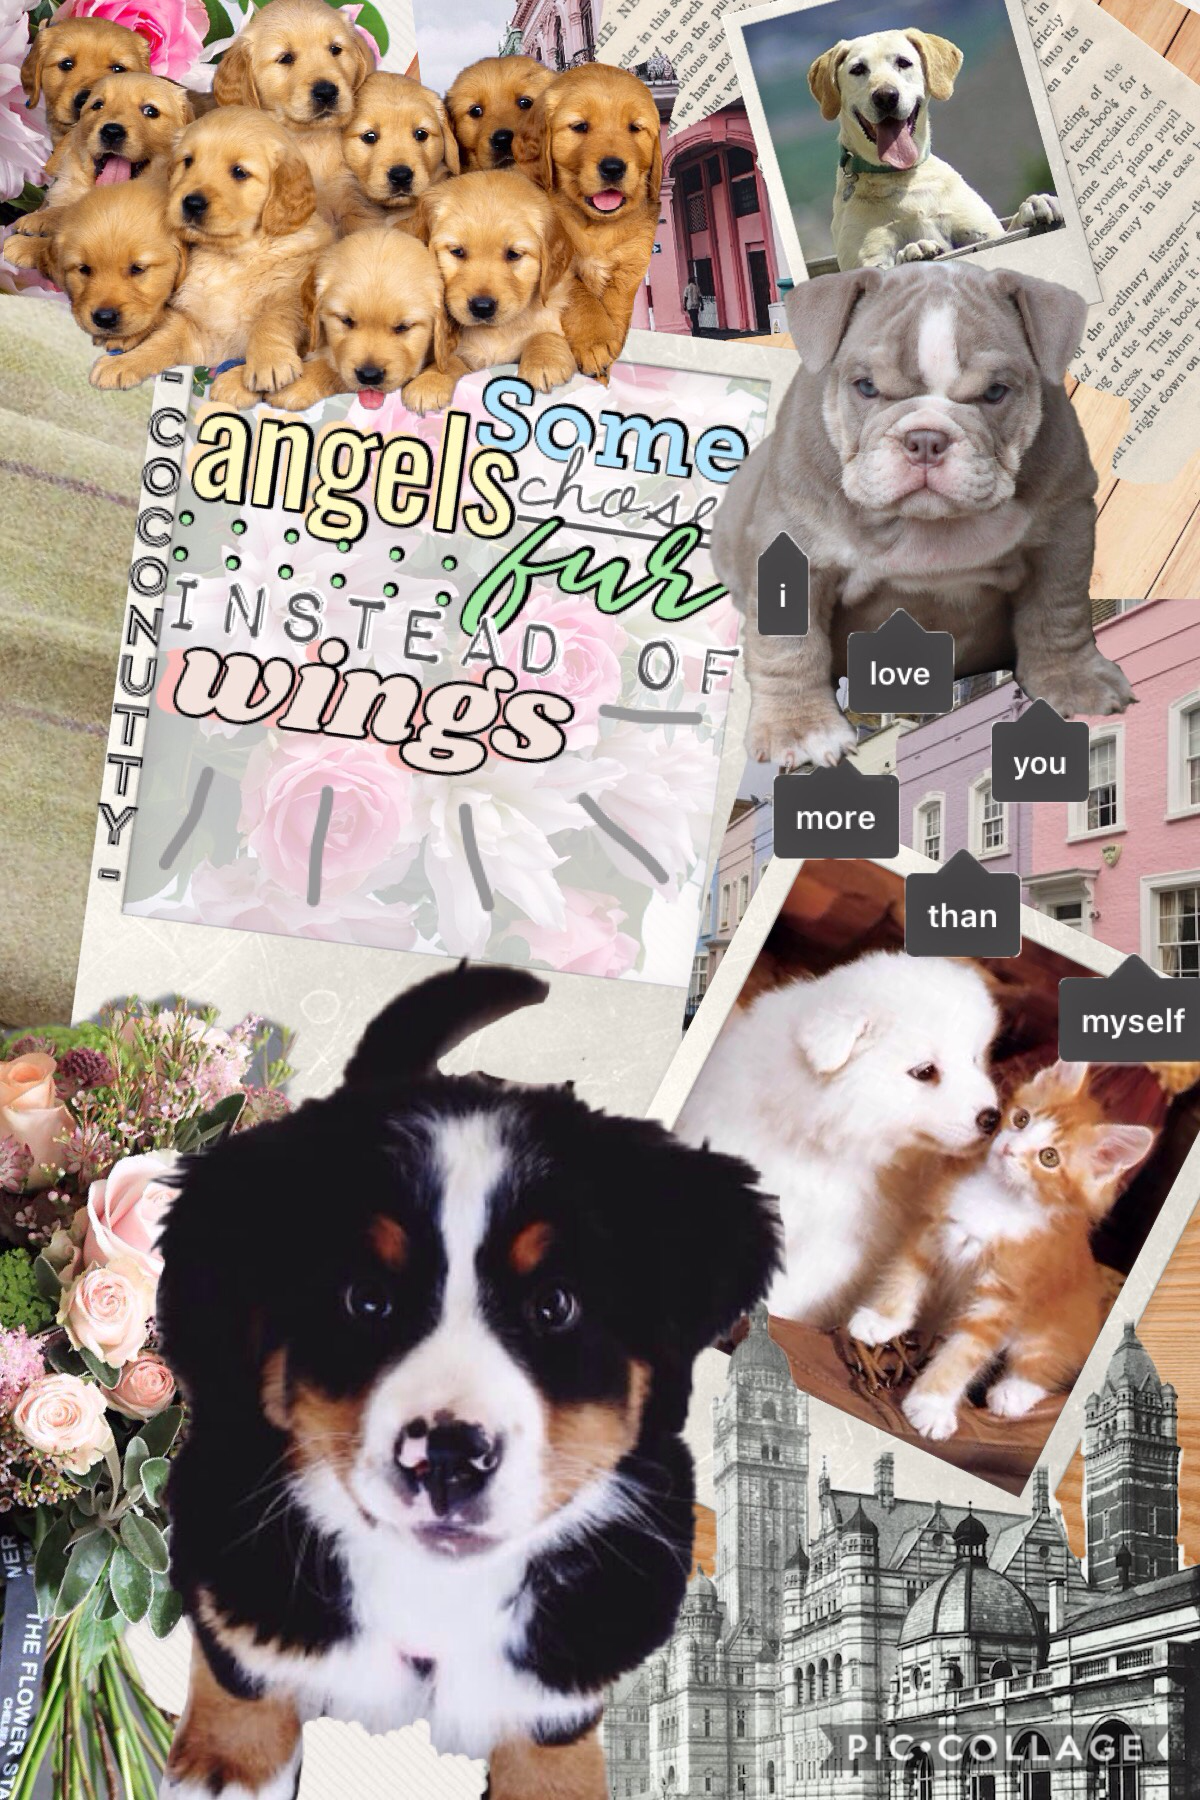 Inspired by @meandmeonly! She makes AMAZING collages!